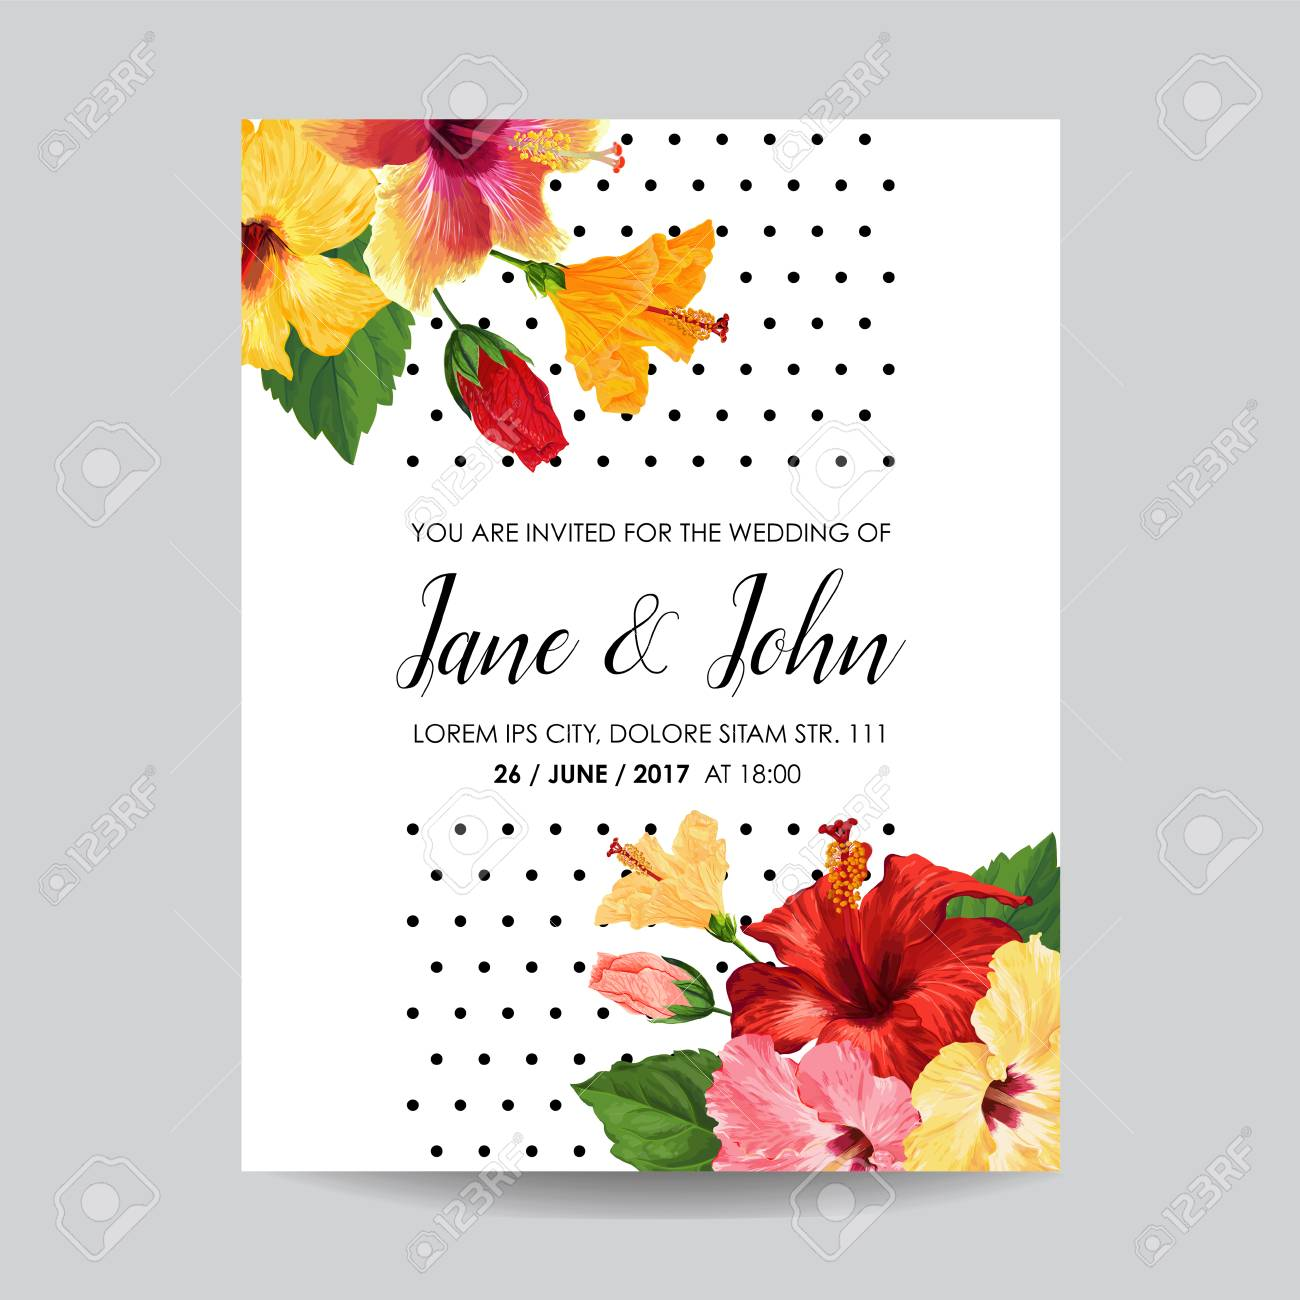 Wedding Invitation Template With Red Hibiscus Flowers Save The